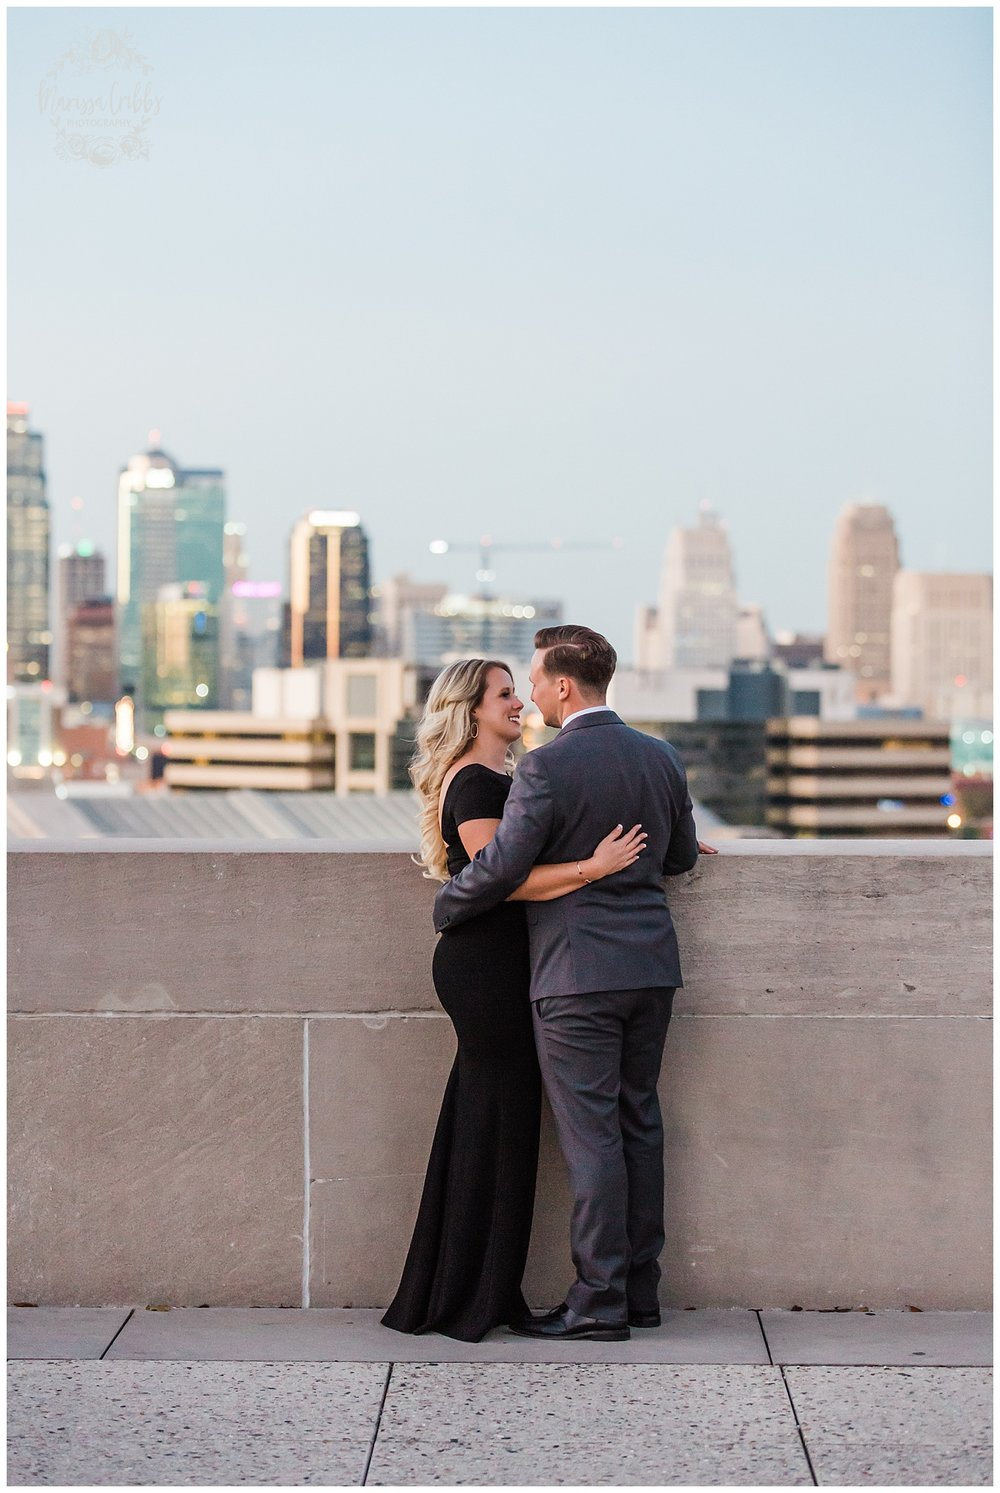 JACLYN & CHASE ENGAGEMENT | KC LIBERTY MEMORIAL ENGAGEMENT | UNION STATION | MARISSA CRIBBS PHOTOGRAPHY_3333.jpg